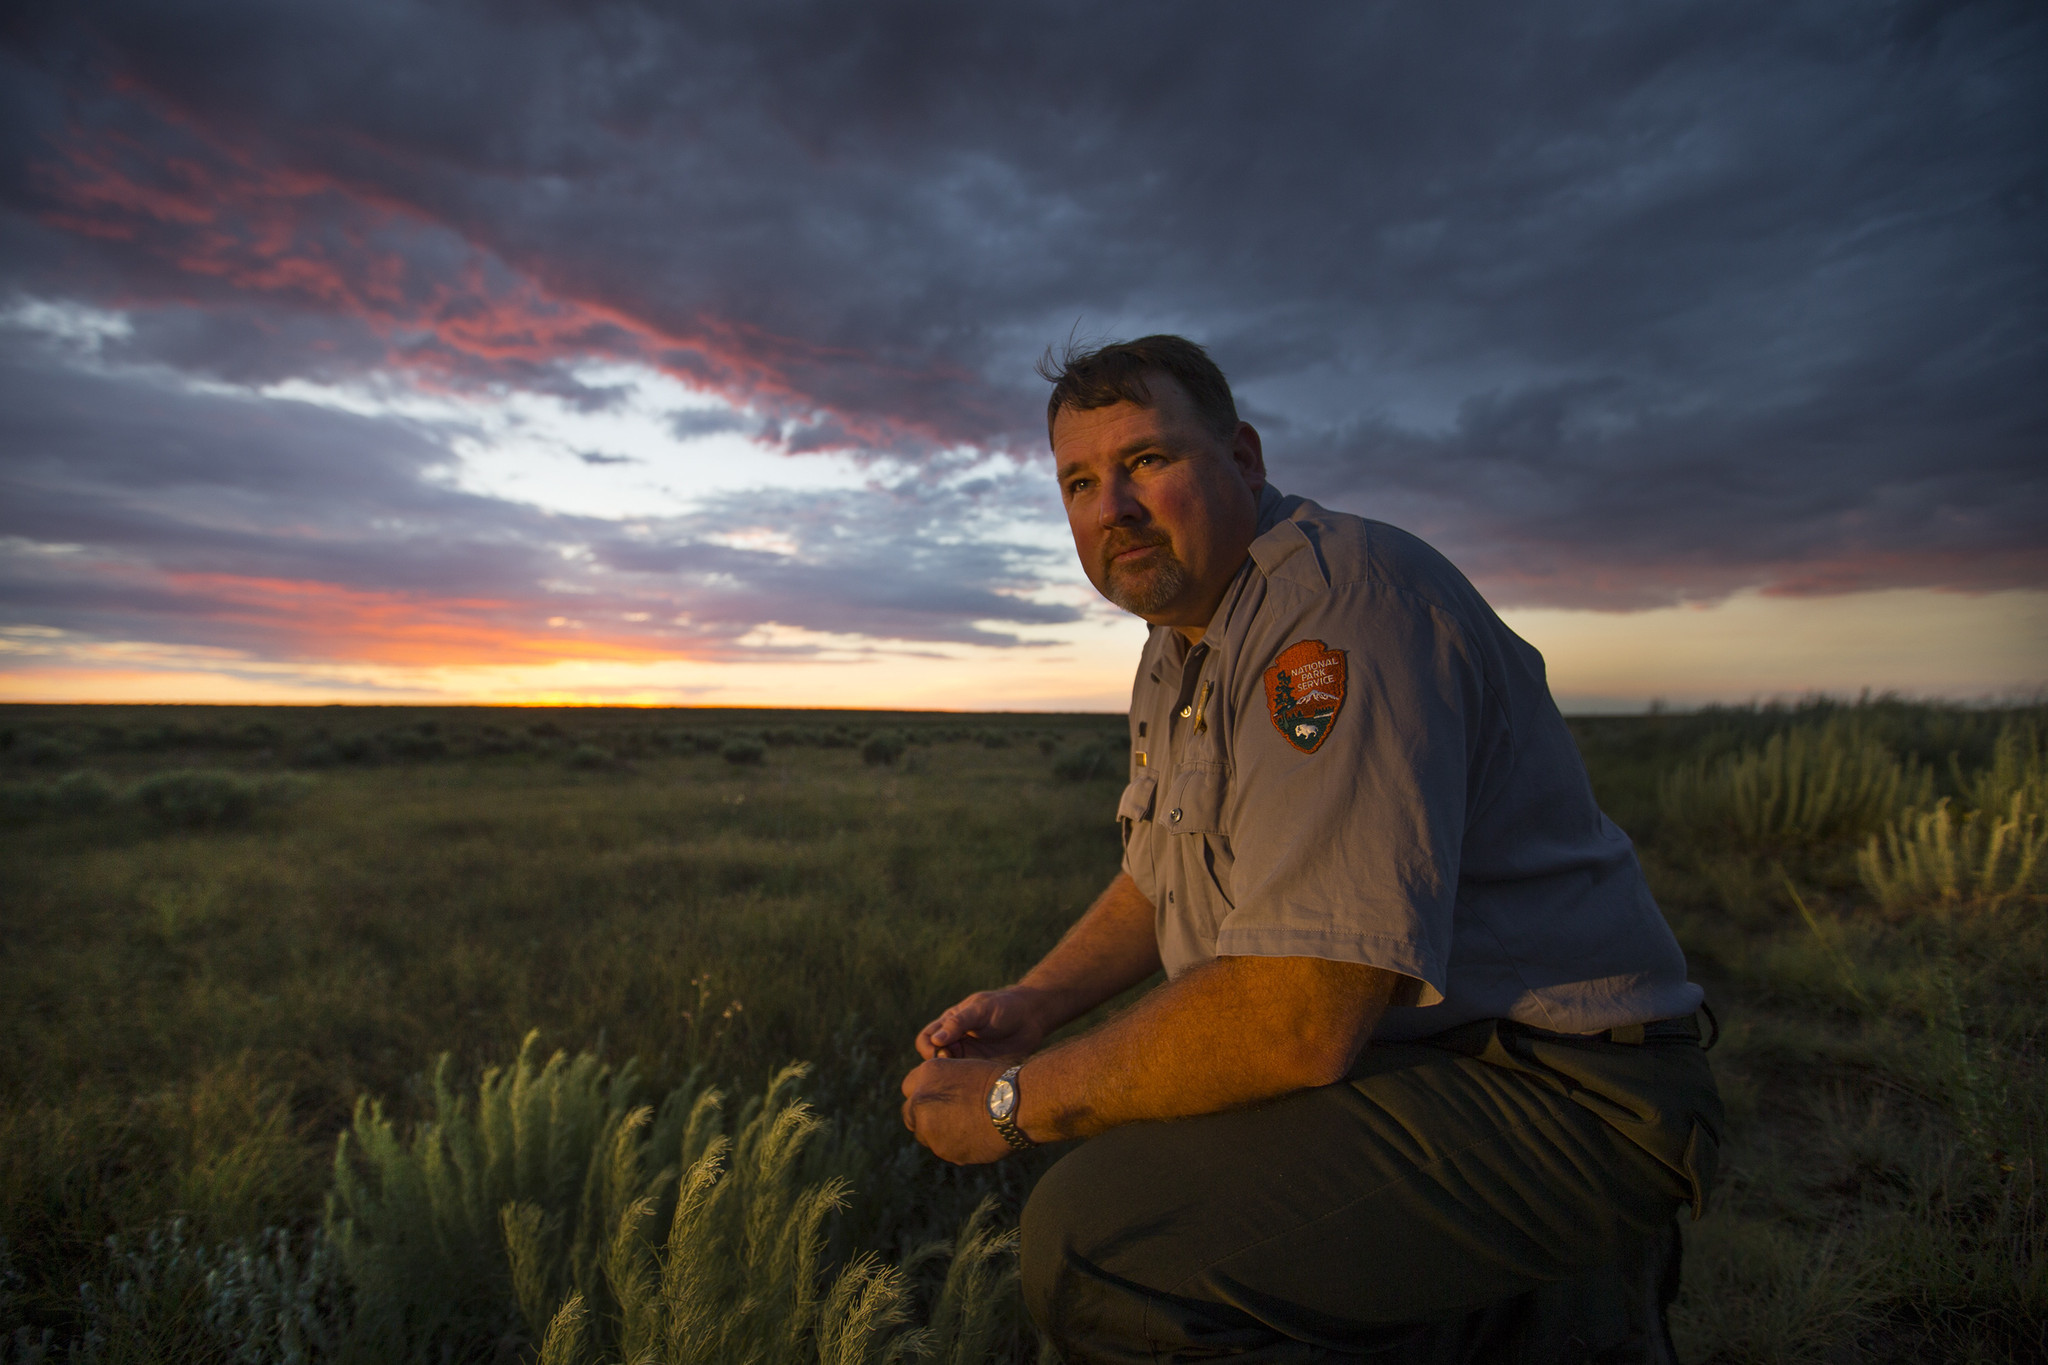 Shawn Gillette is the chief of interpretation at Sand Creek Massacre National Historic Site.